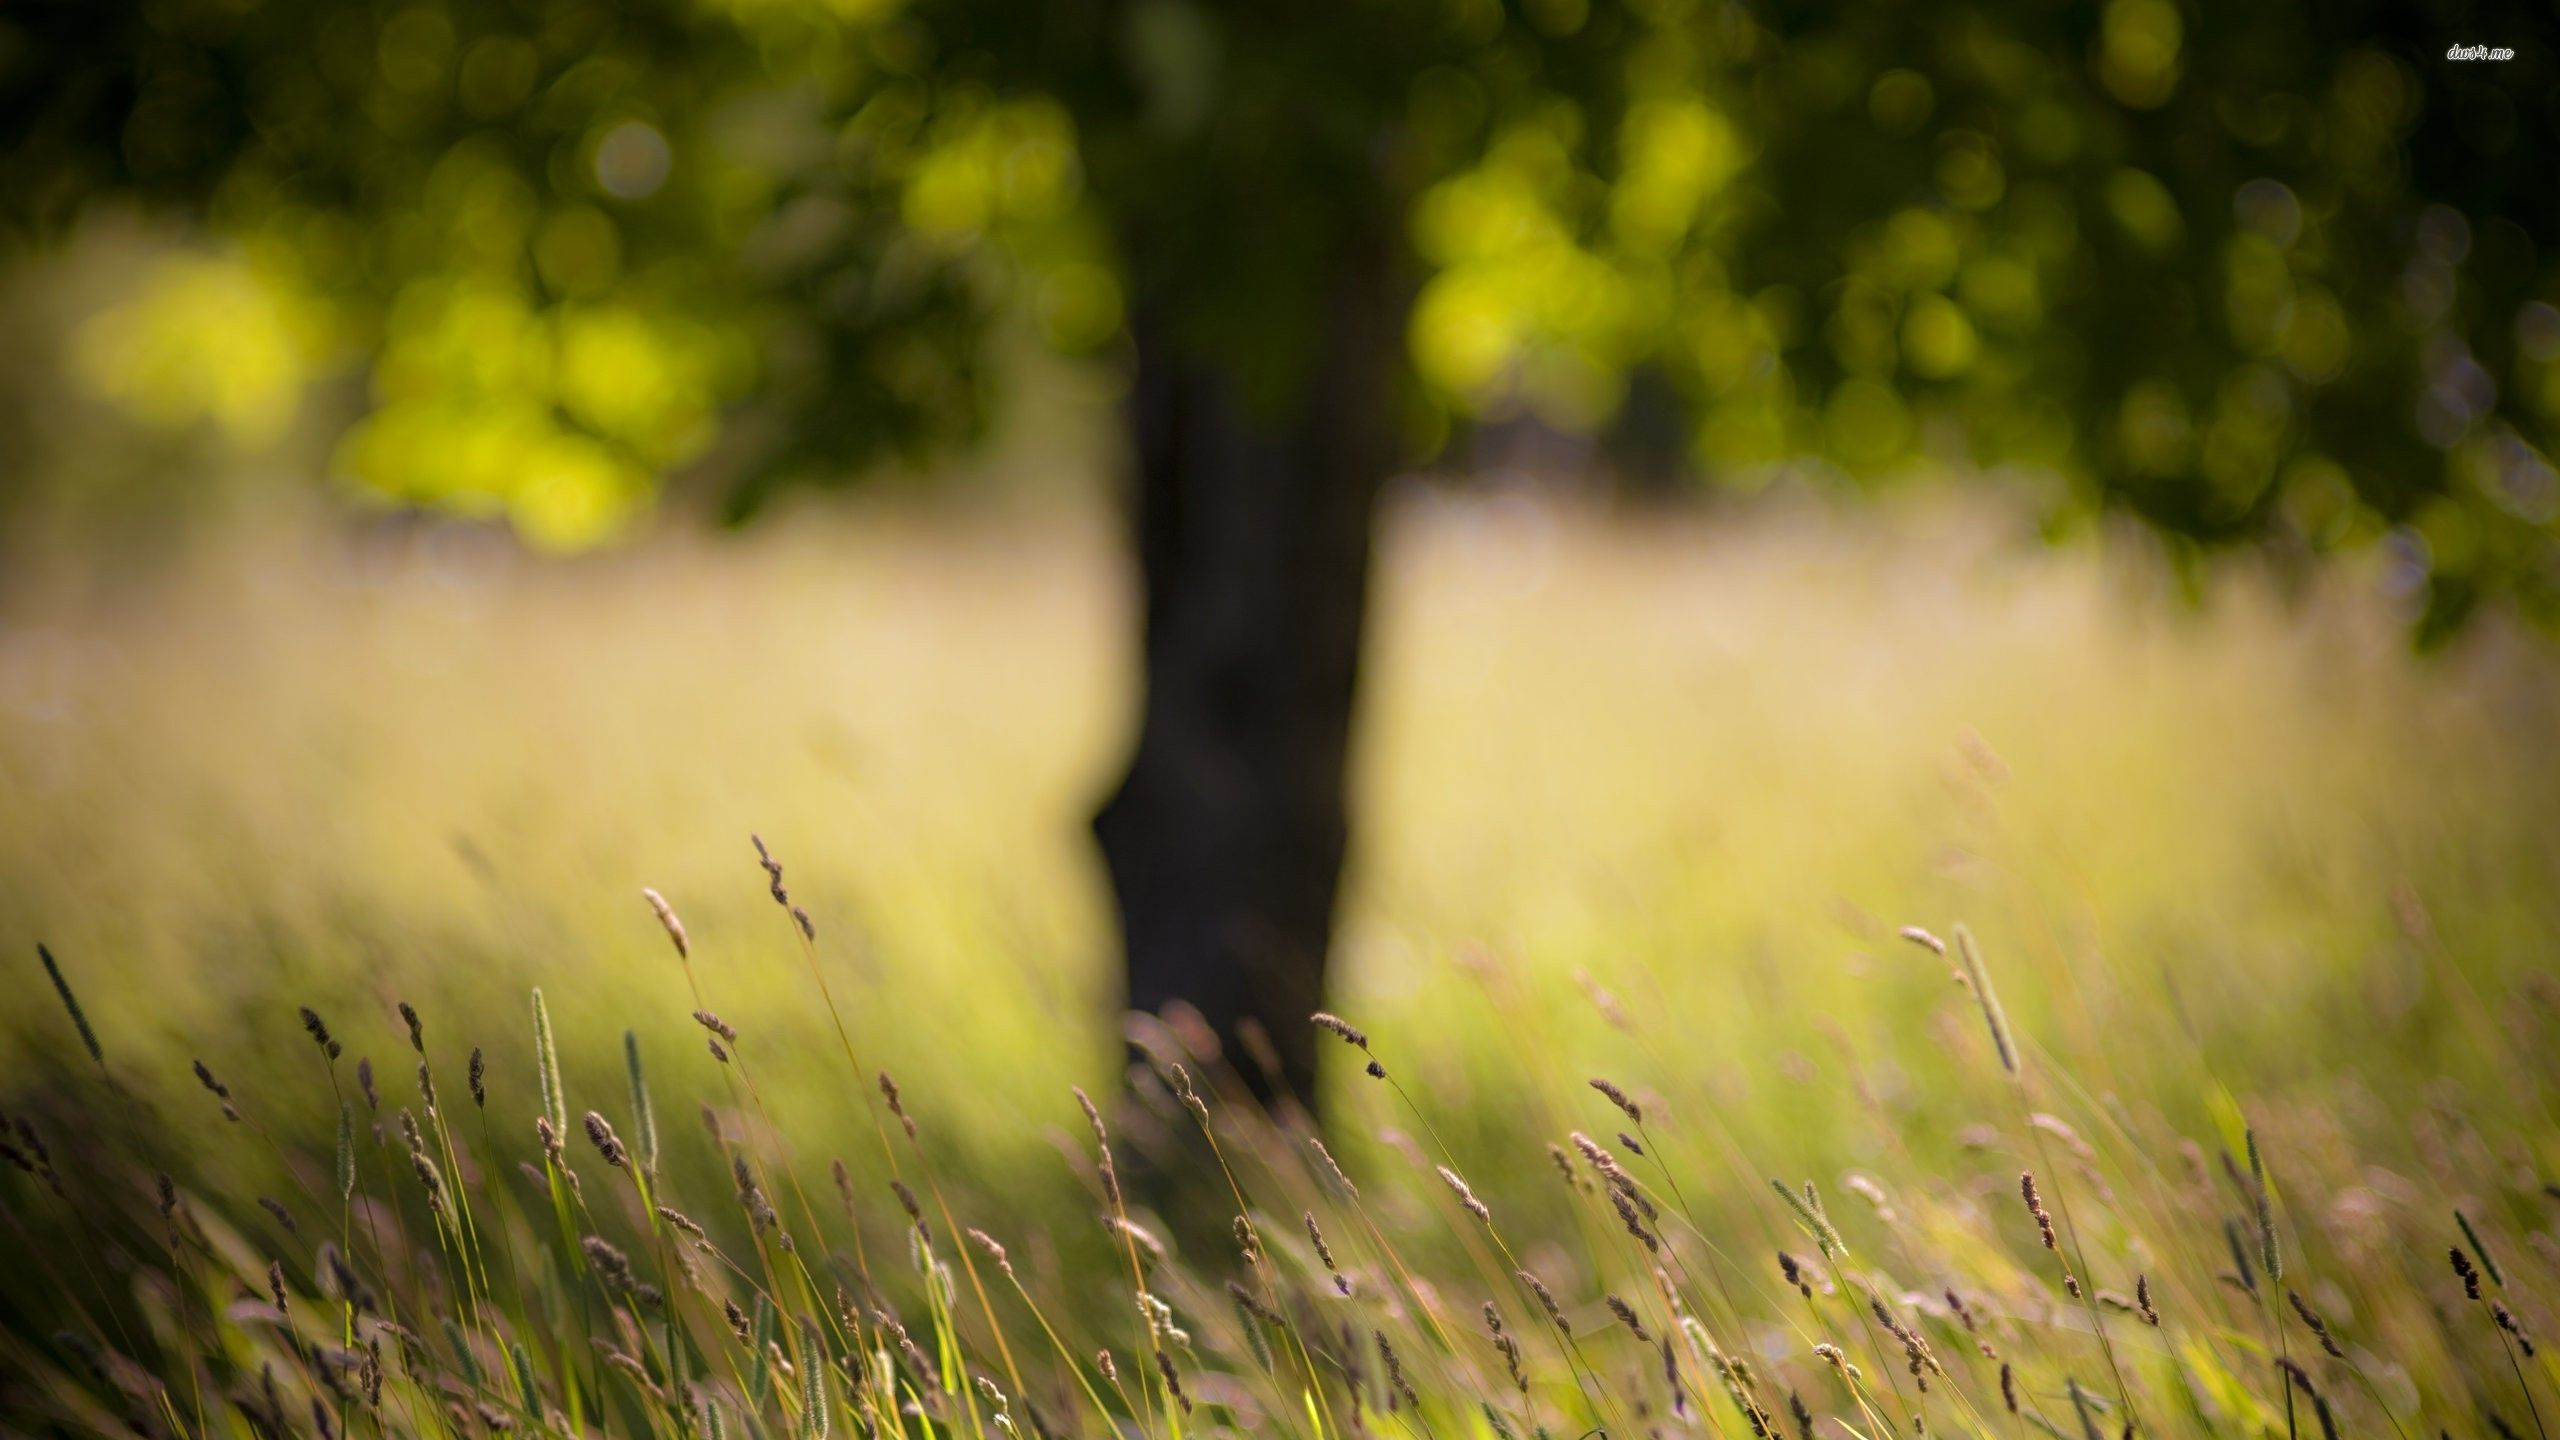 Grass with tree in the background wallpaper - Photography ...